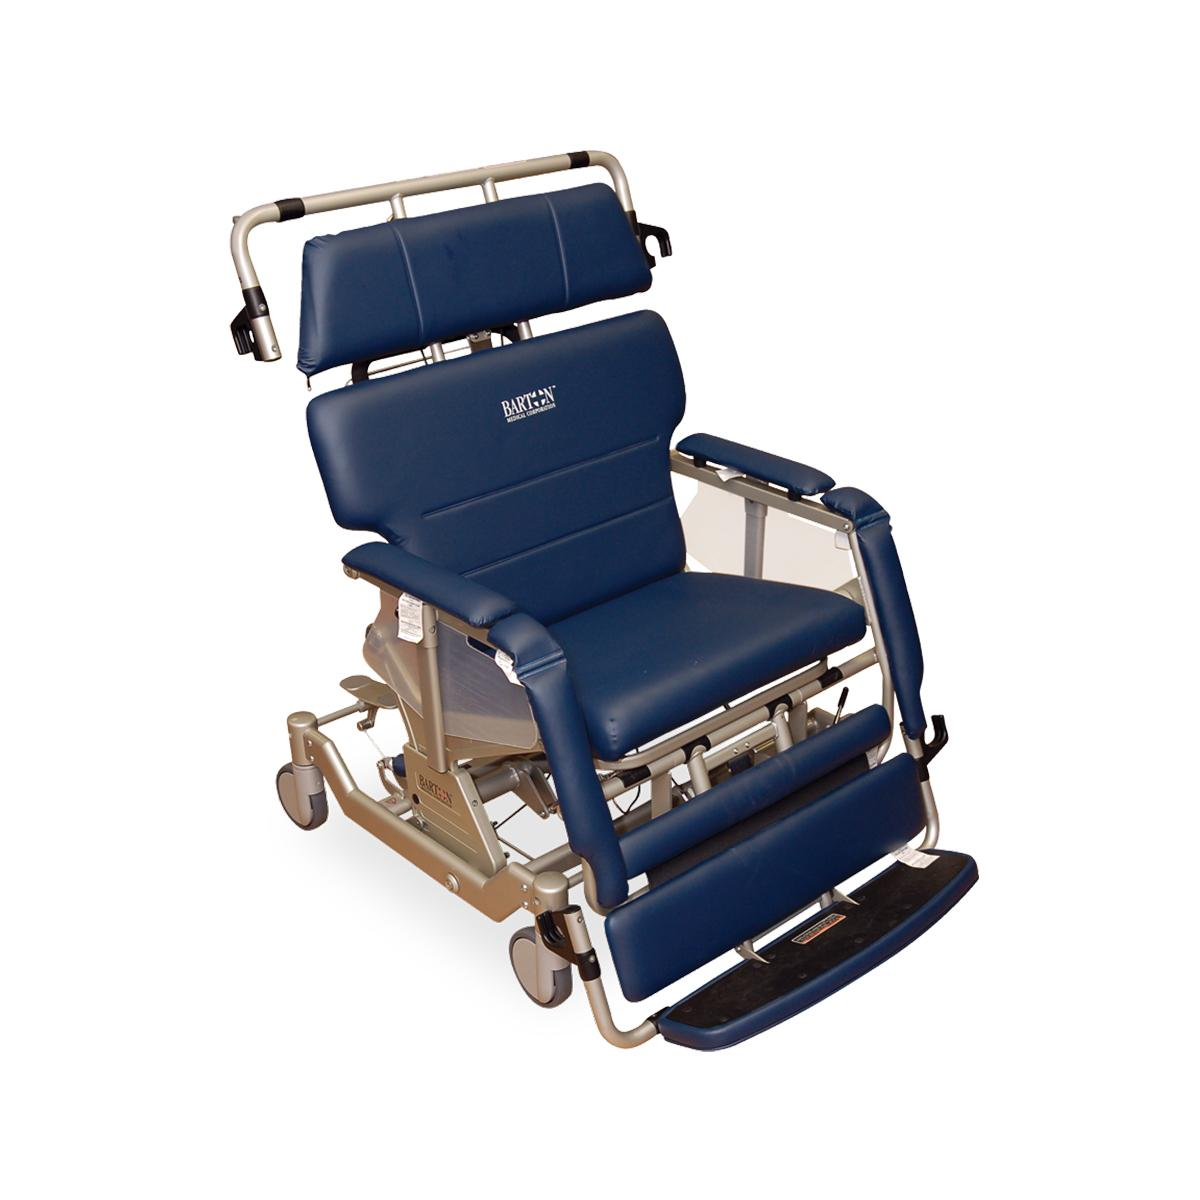 Barton Transfer Chair, blue, upright position, 3/4 view